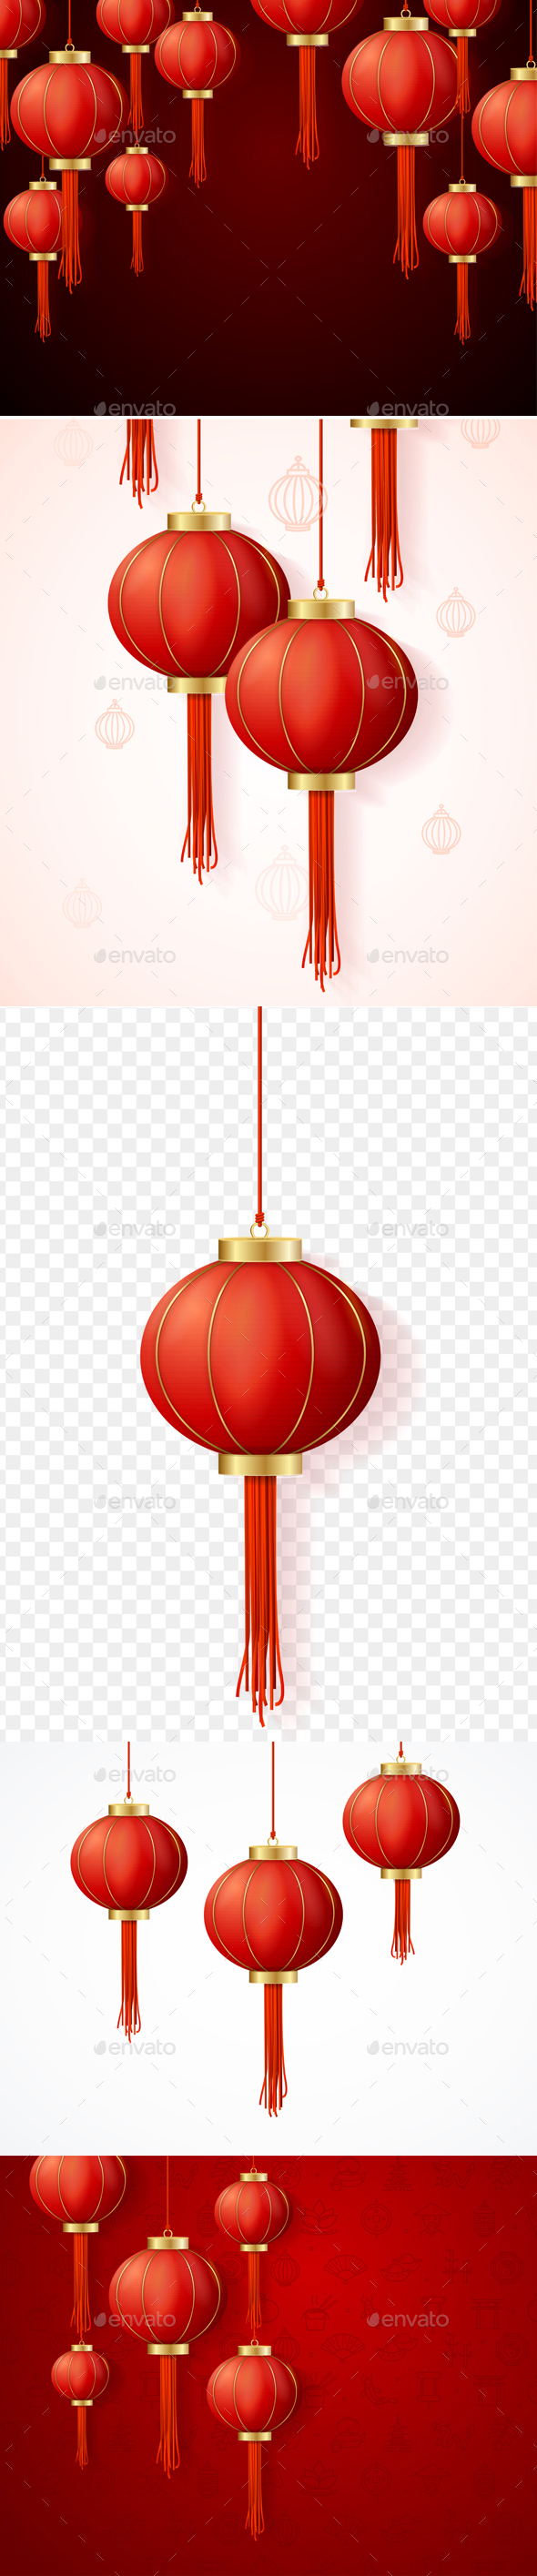 Realistic Detailed 3d Chinese Red Paper Lantern Background Card. Vector